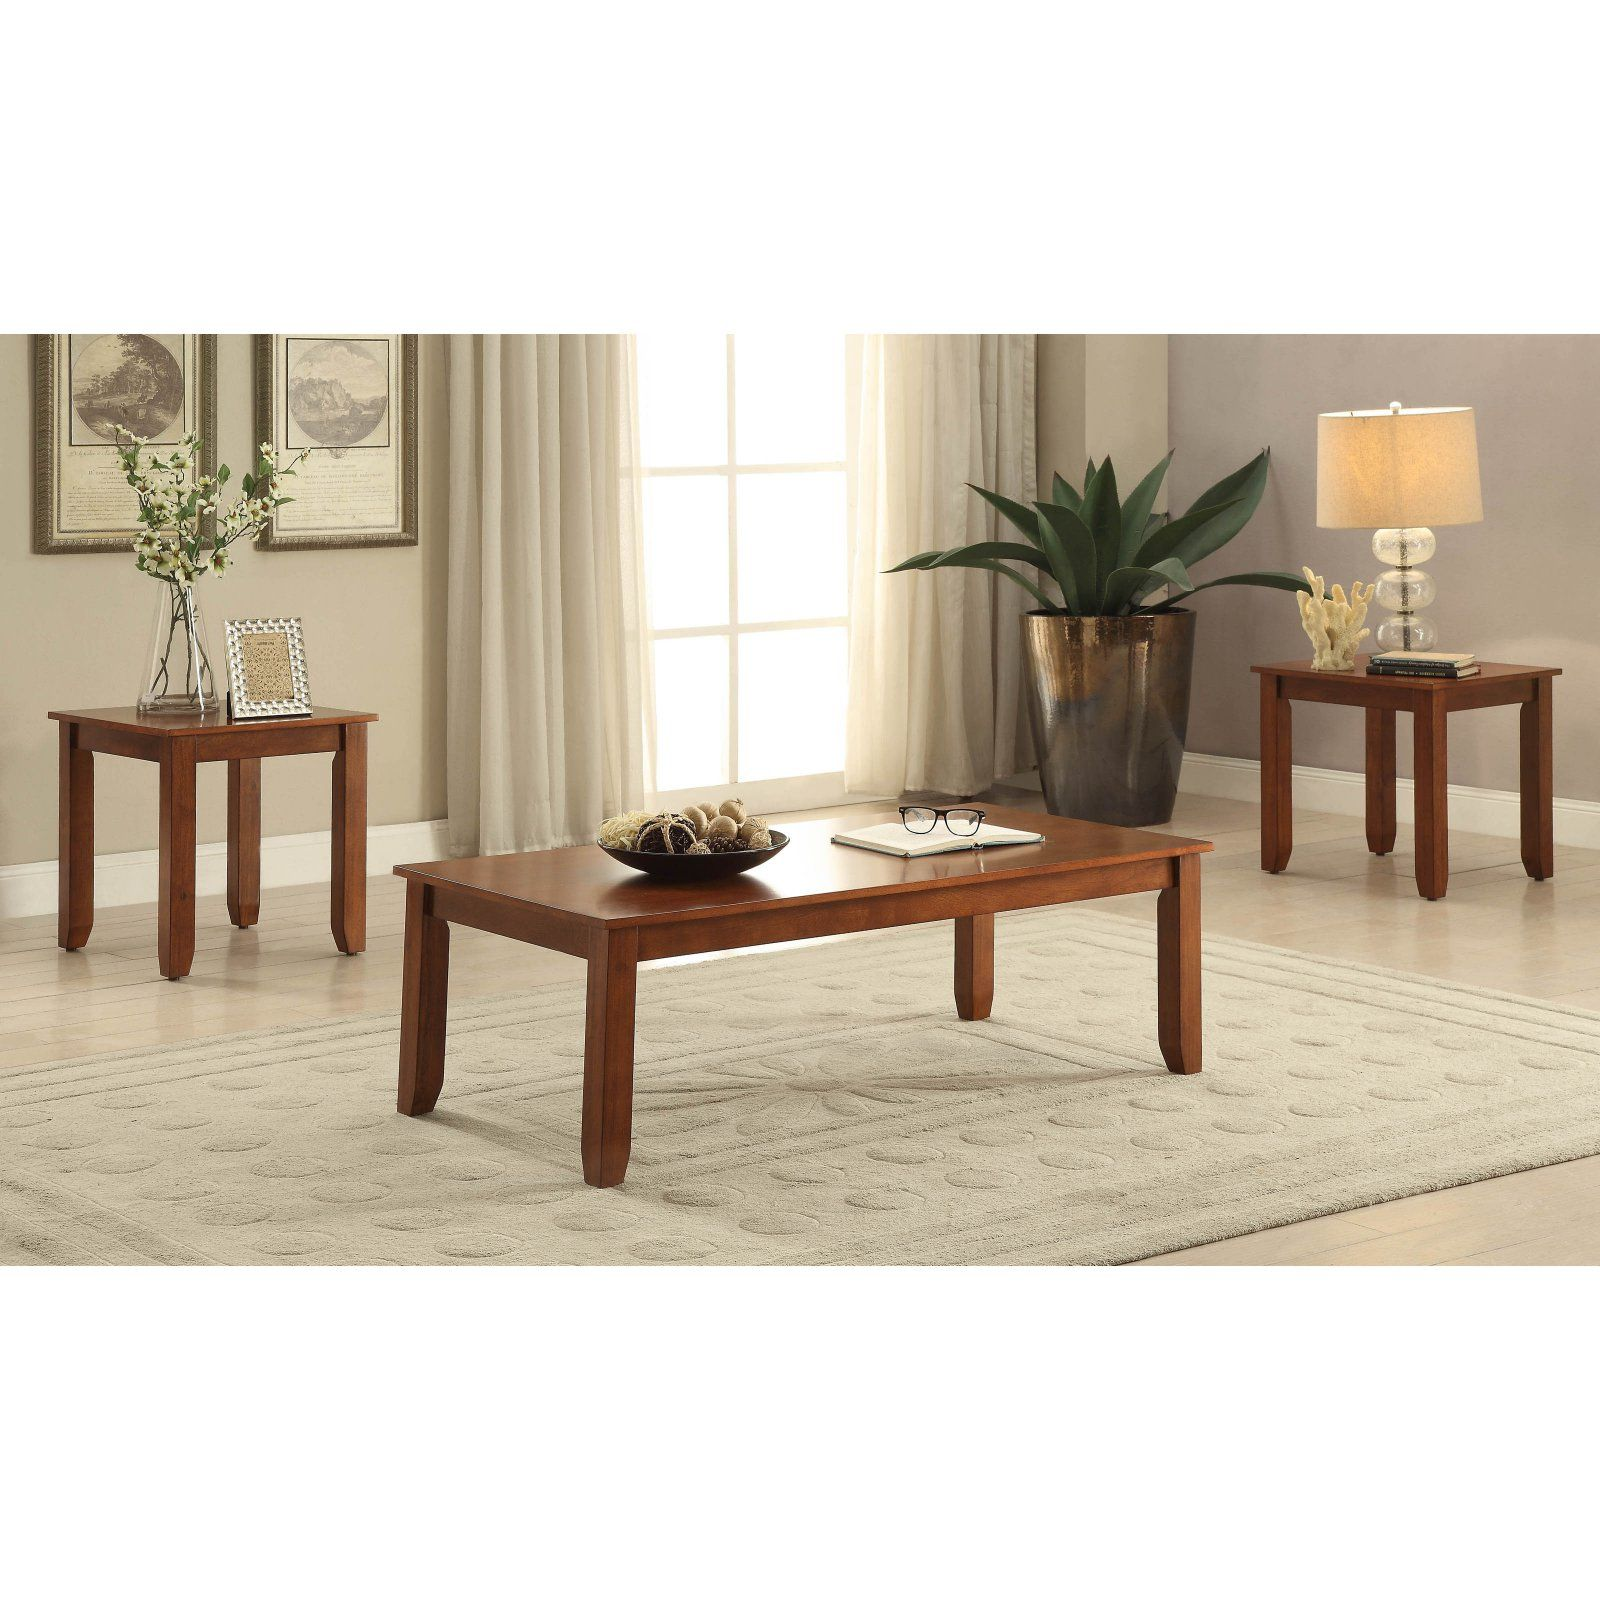 43+ Living room end tables and coffee table set information